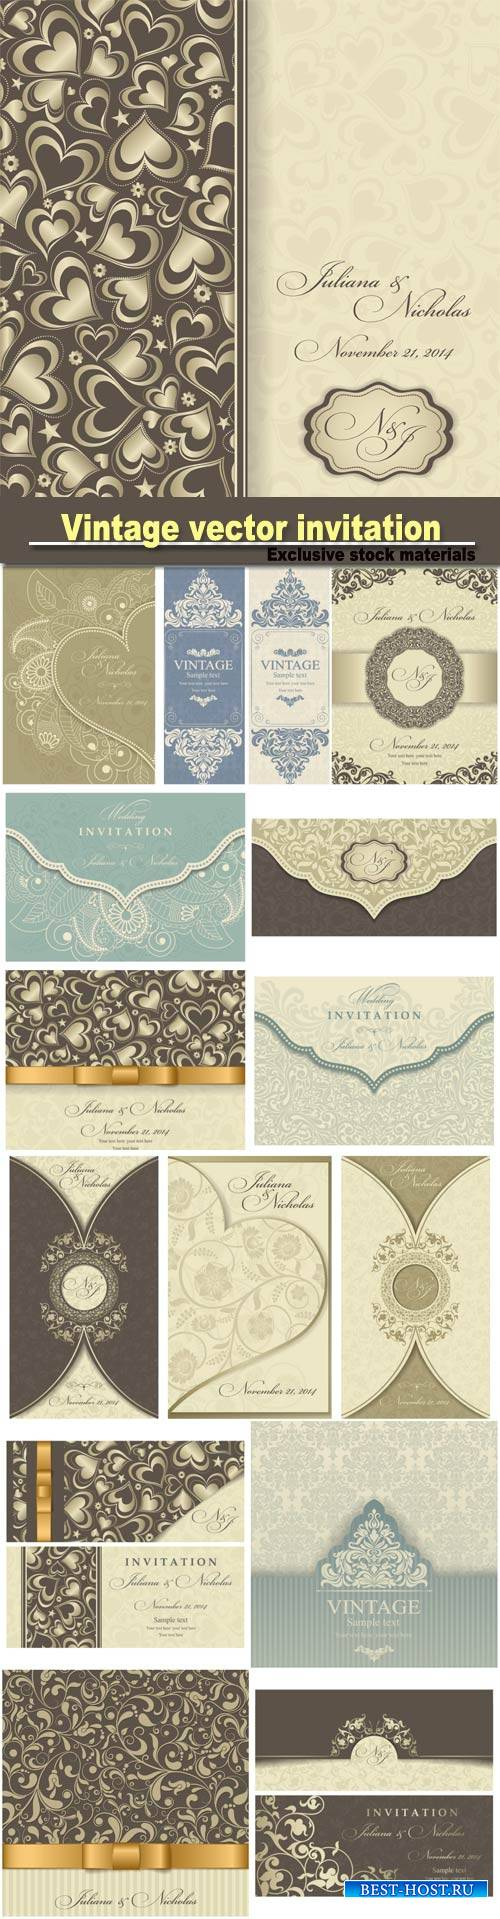 Vintage vector invitation with patterns, envelopes